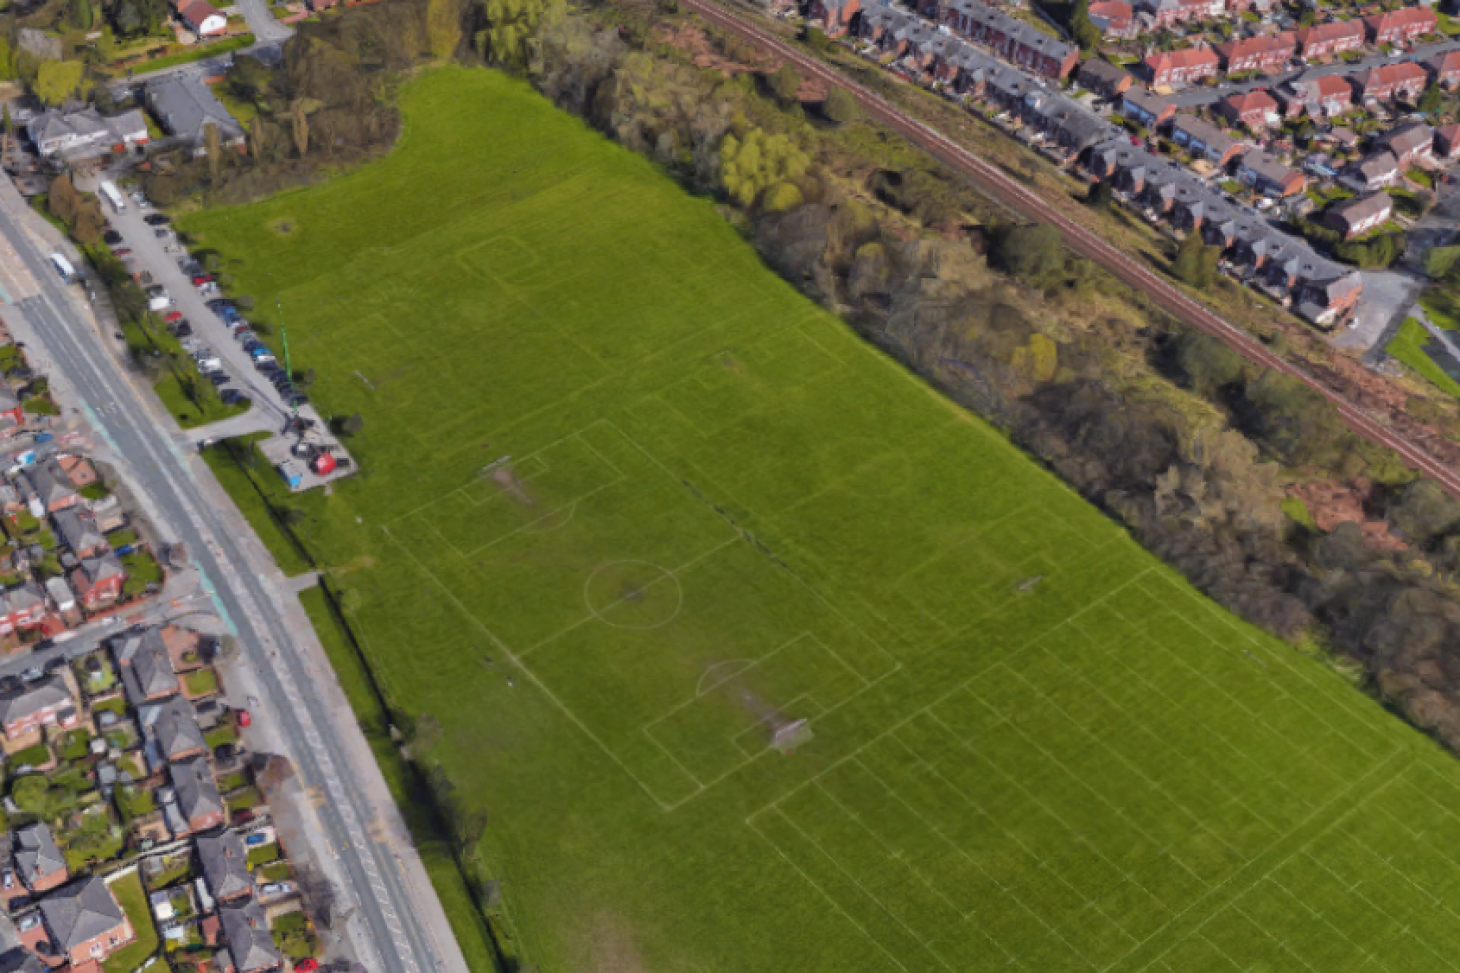 Rabbit Hills Playing Fields 11 a side | Grass football pitch